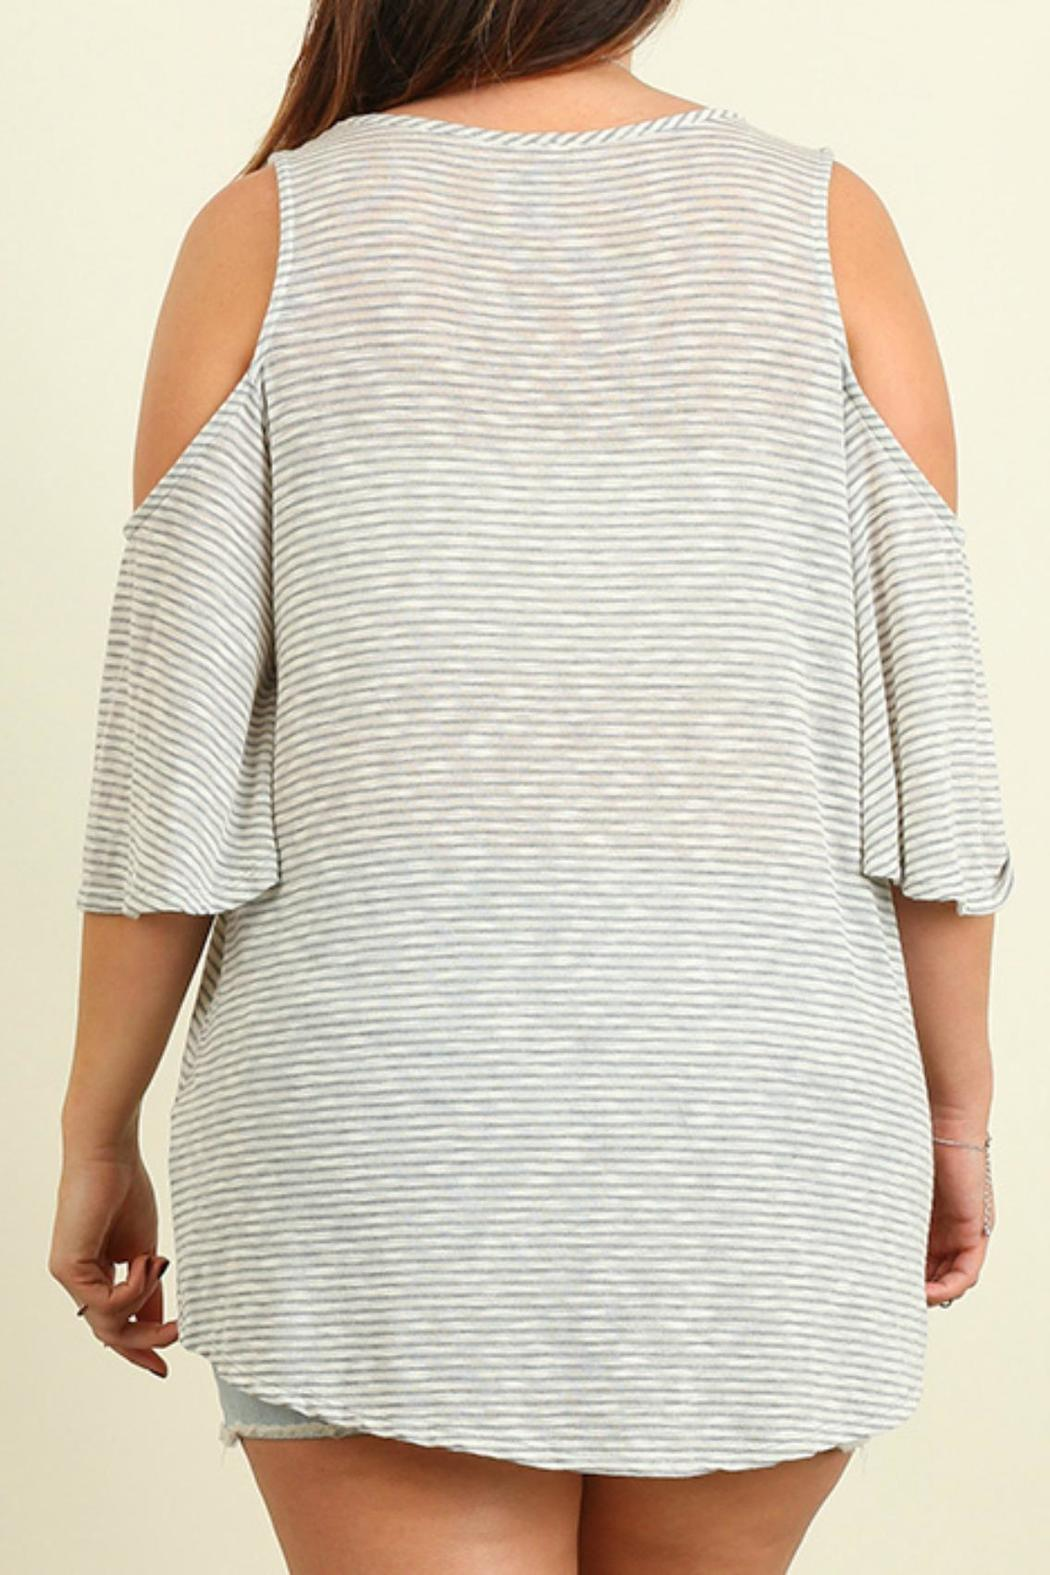 Umgee USA Open Shoulder Striped Top - Side Cropped Image